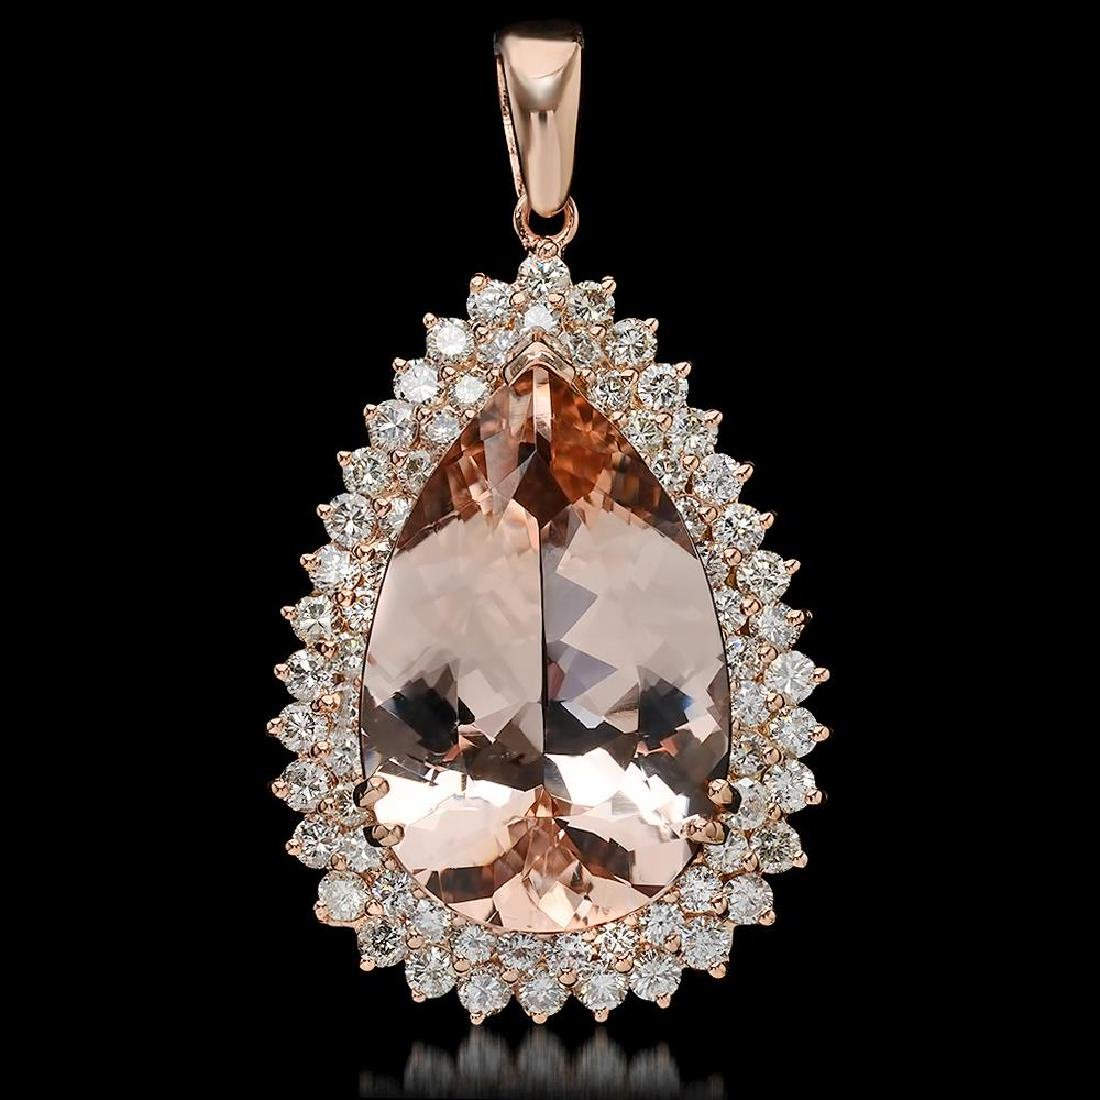 14K Gold 22.68ct Morganite 3.55ct Diamond Pendant